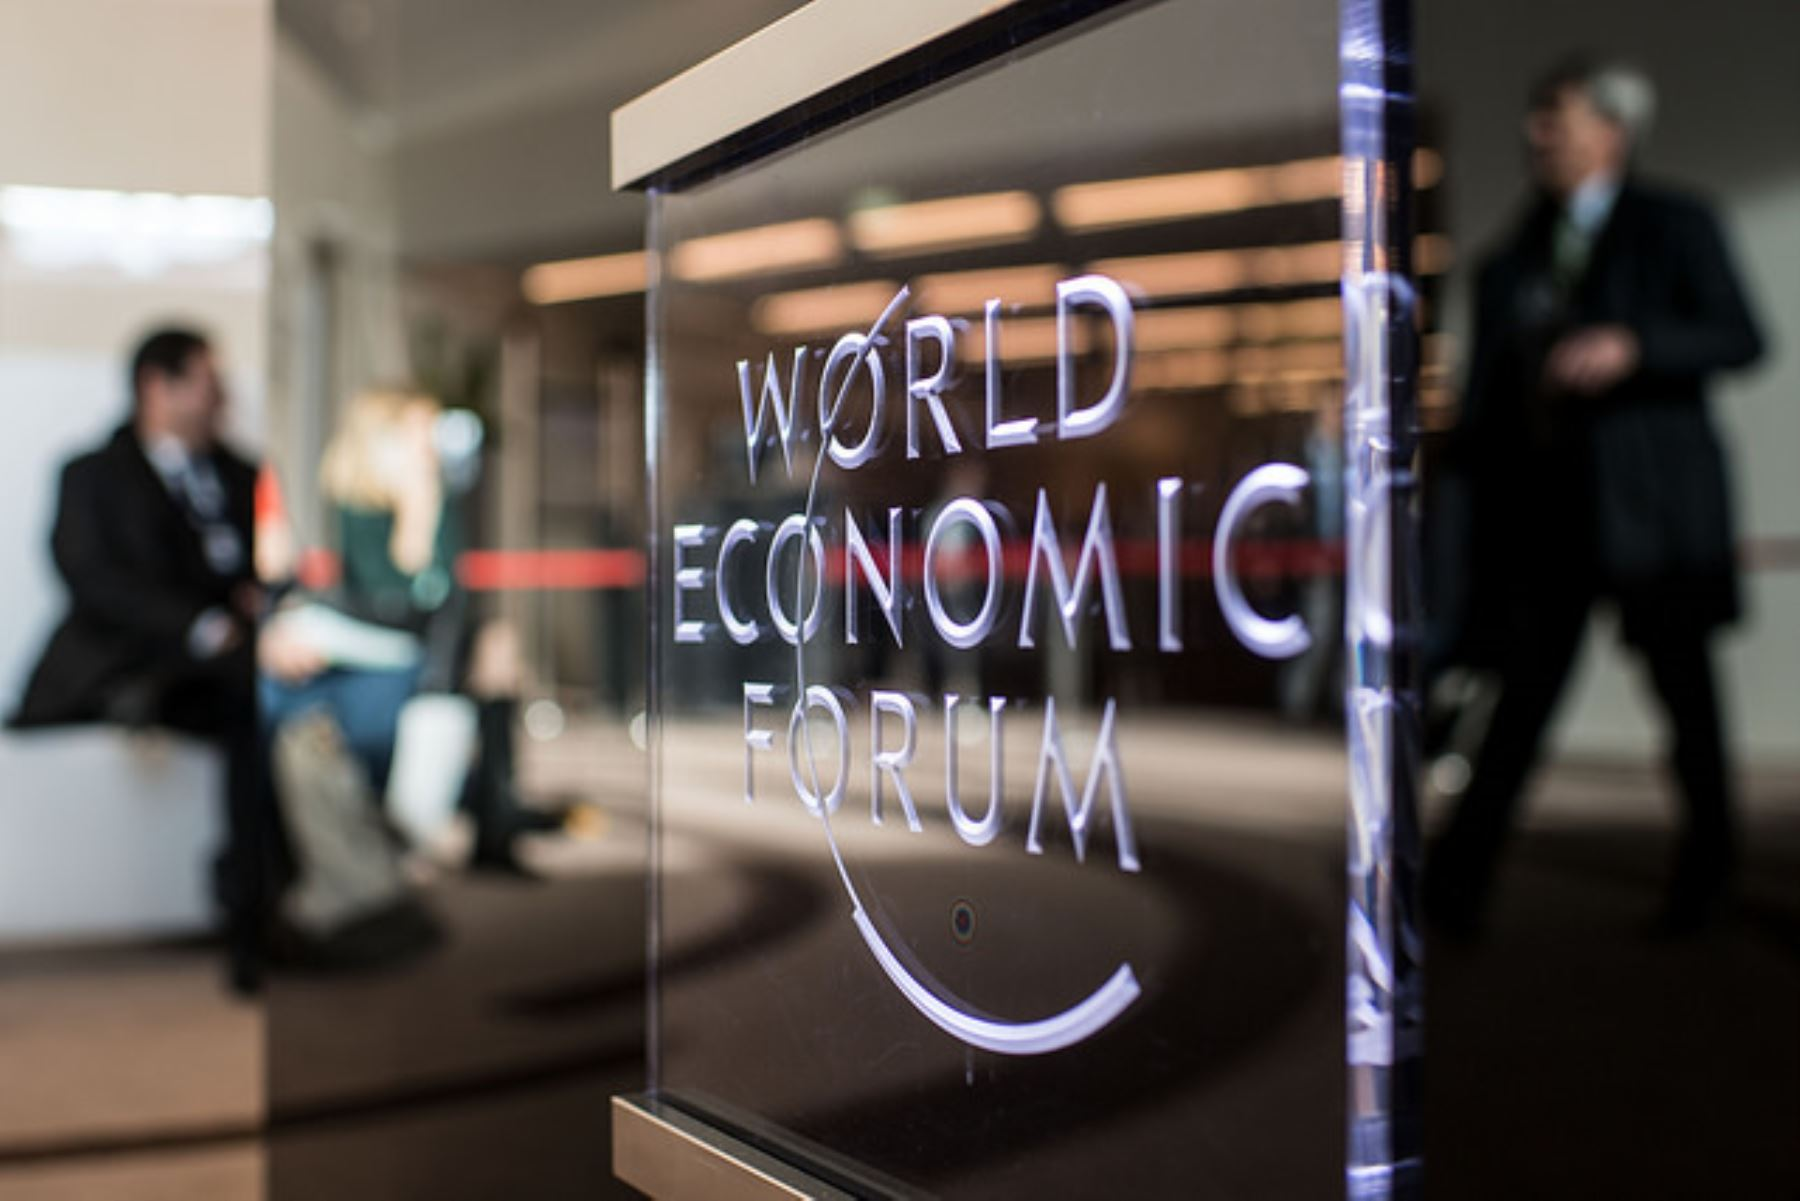 Foto: World Economic Forum.